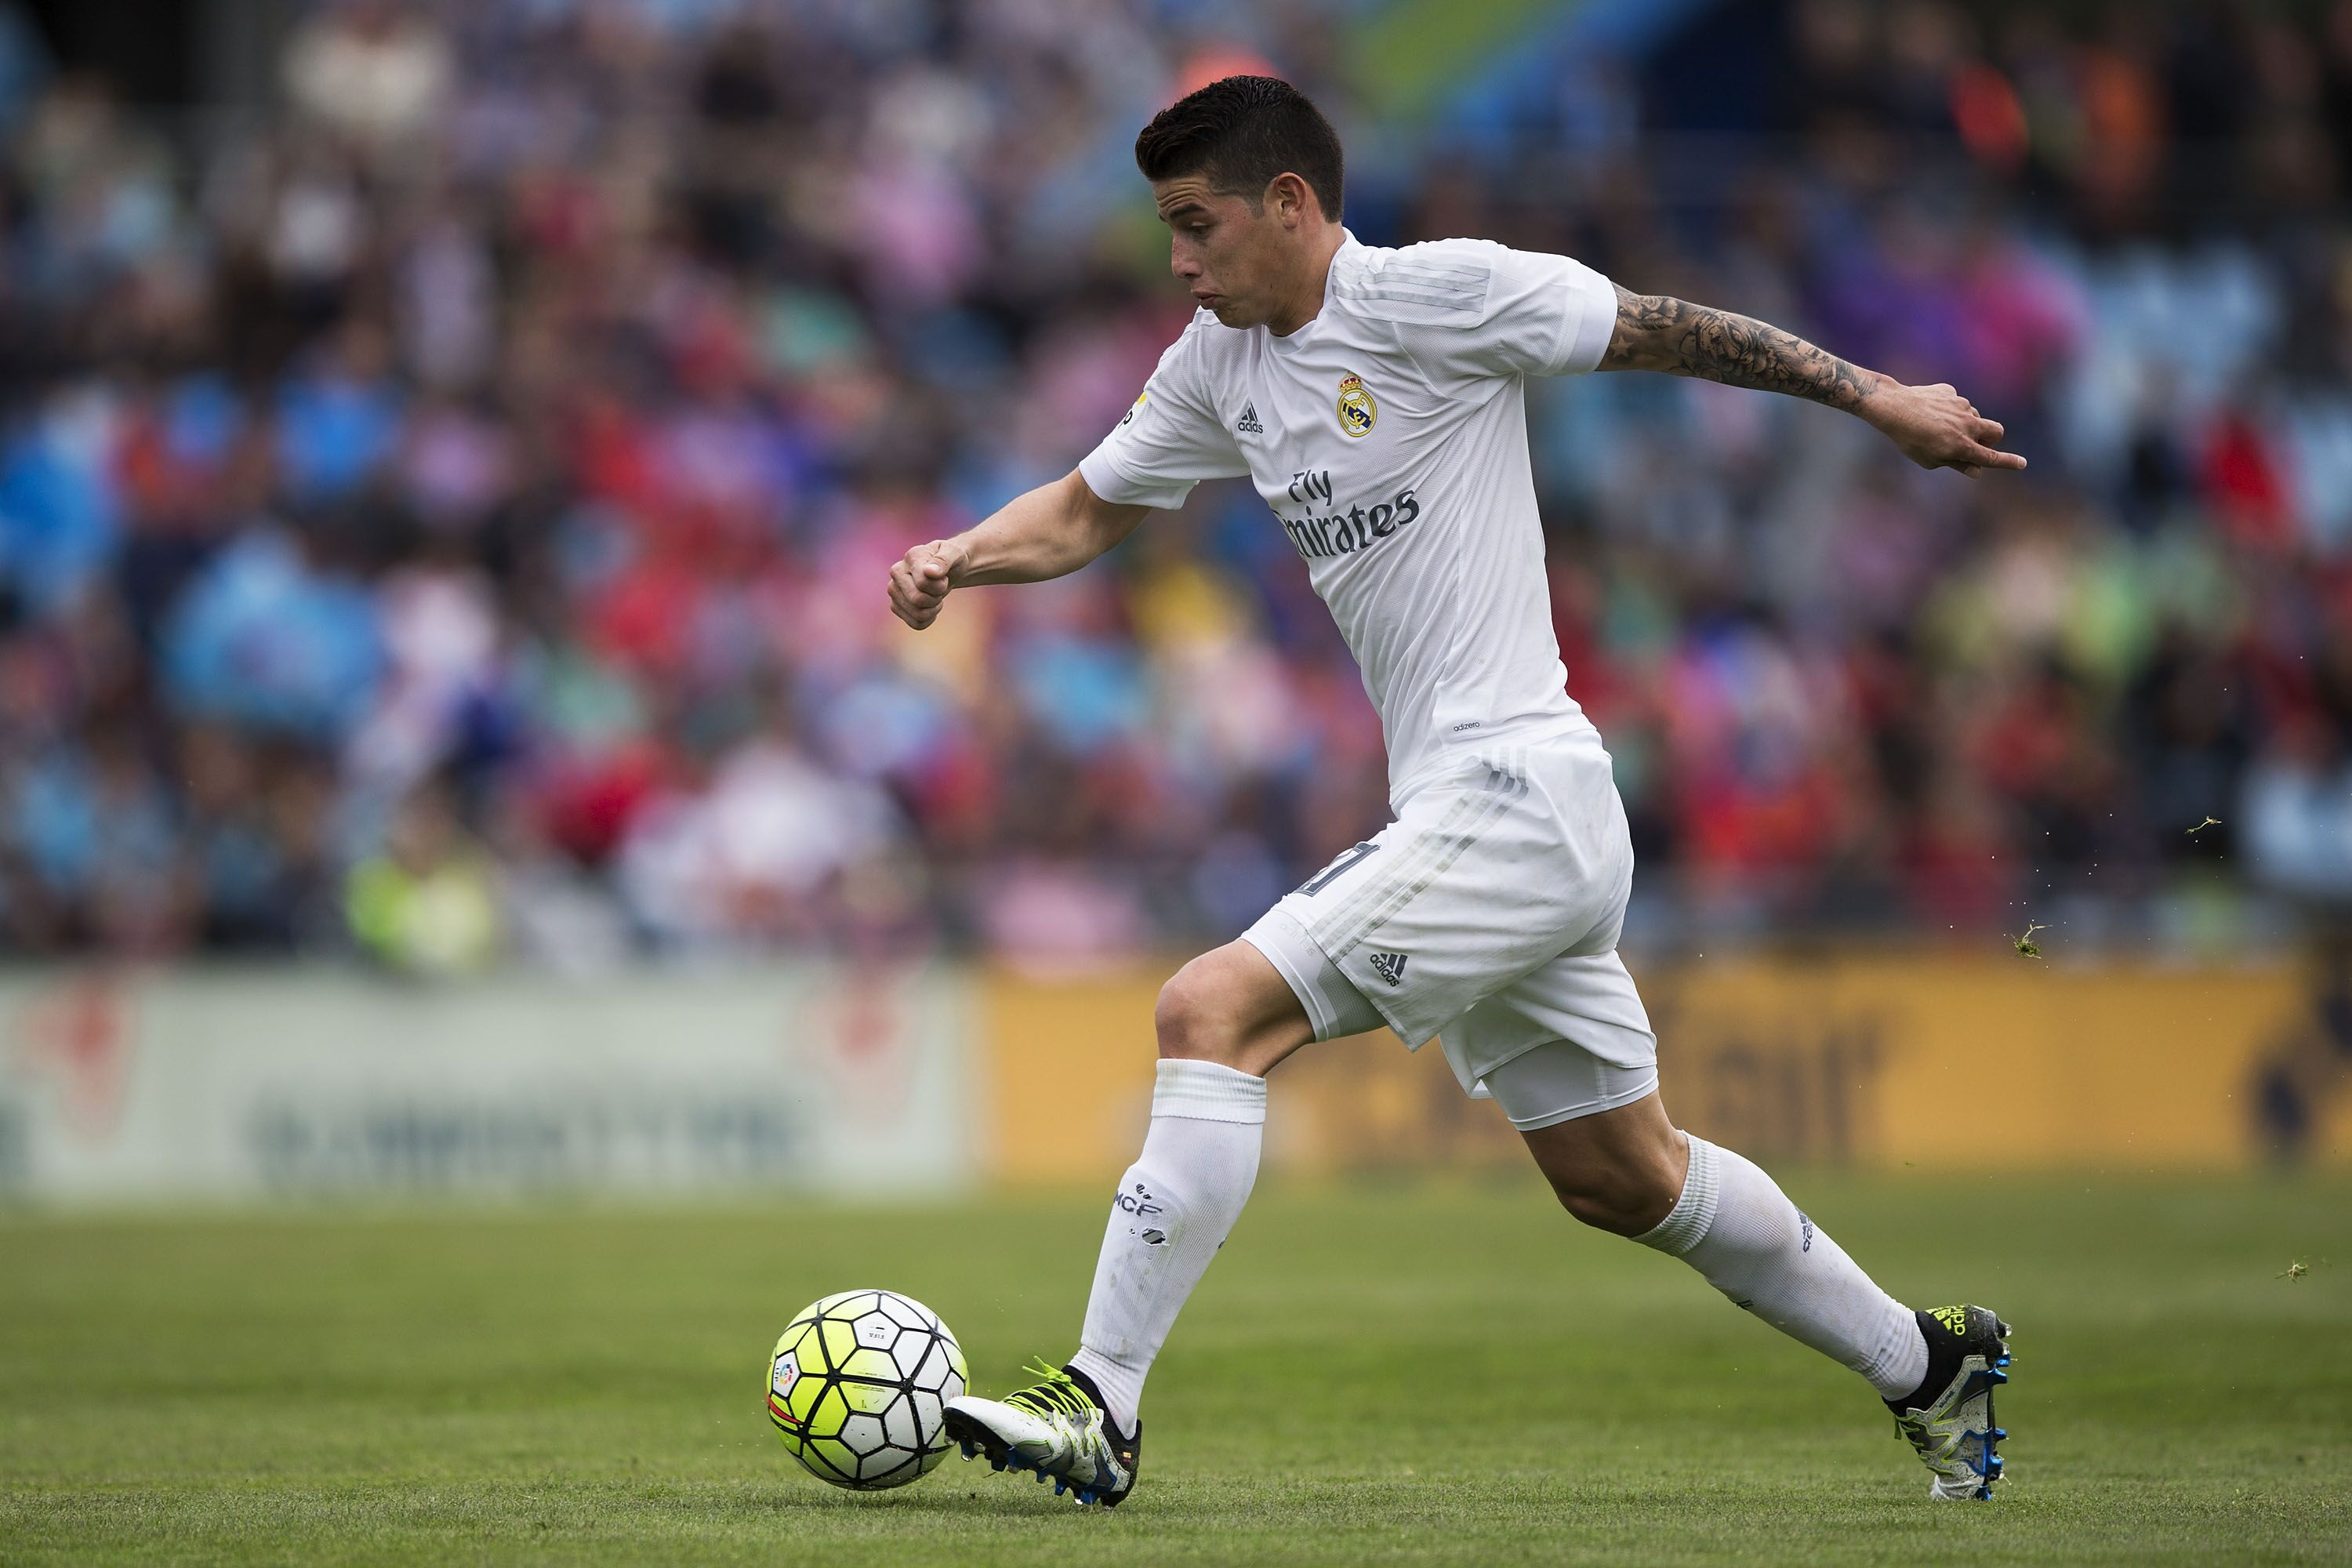 Getafe Cf V Real Madrid Cf: James Rodriguez Transfer Rumours: How Could He Fit In At